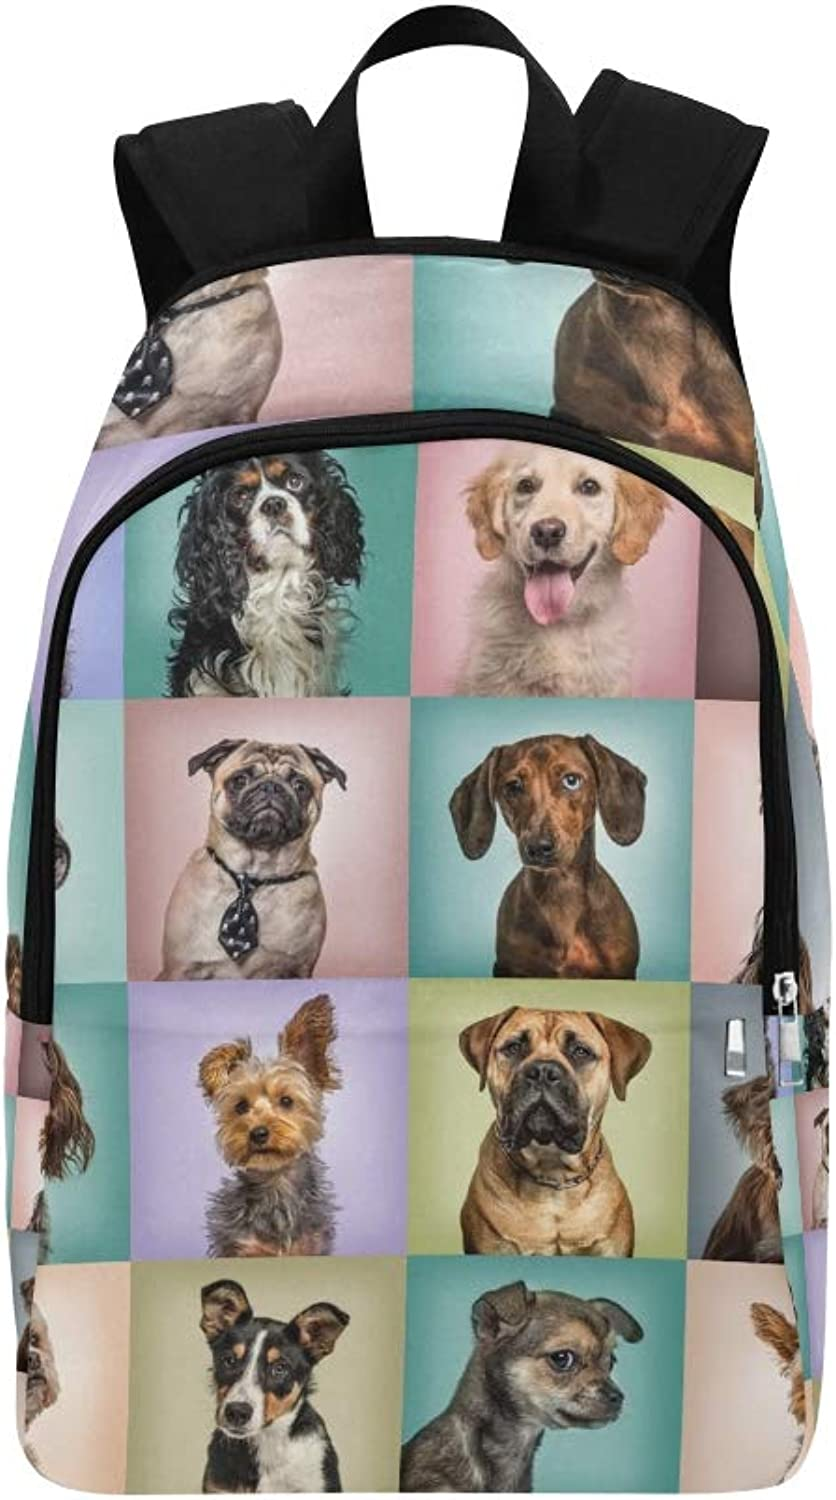 Composition Dogs Against colord S Casual Daypack Travel Bag College School Backpack for Mens and Women